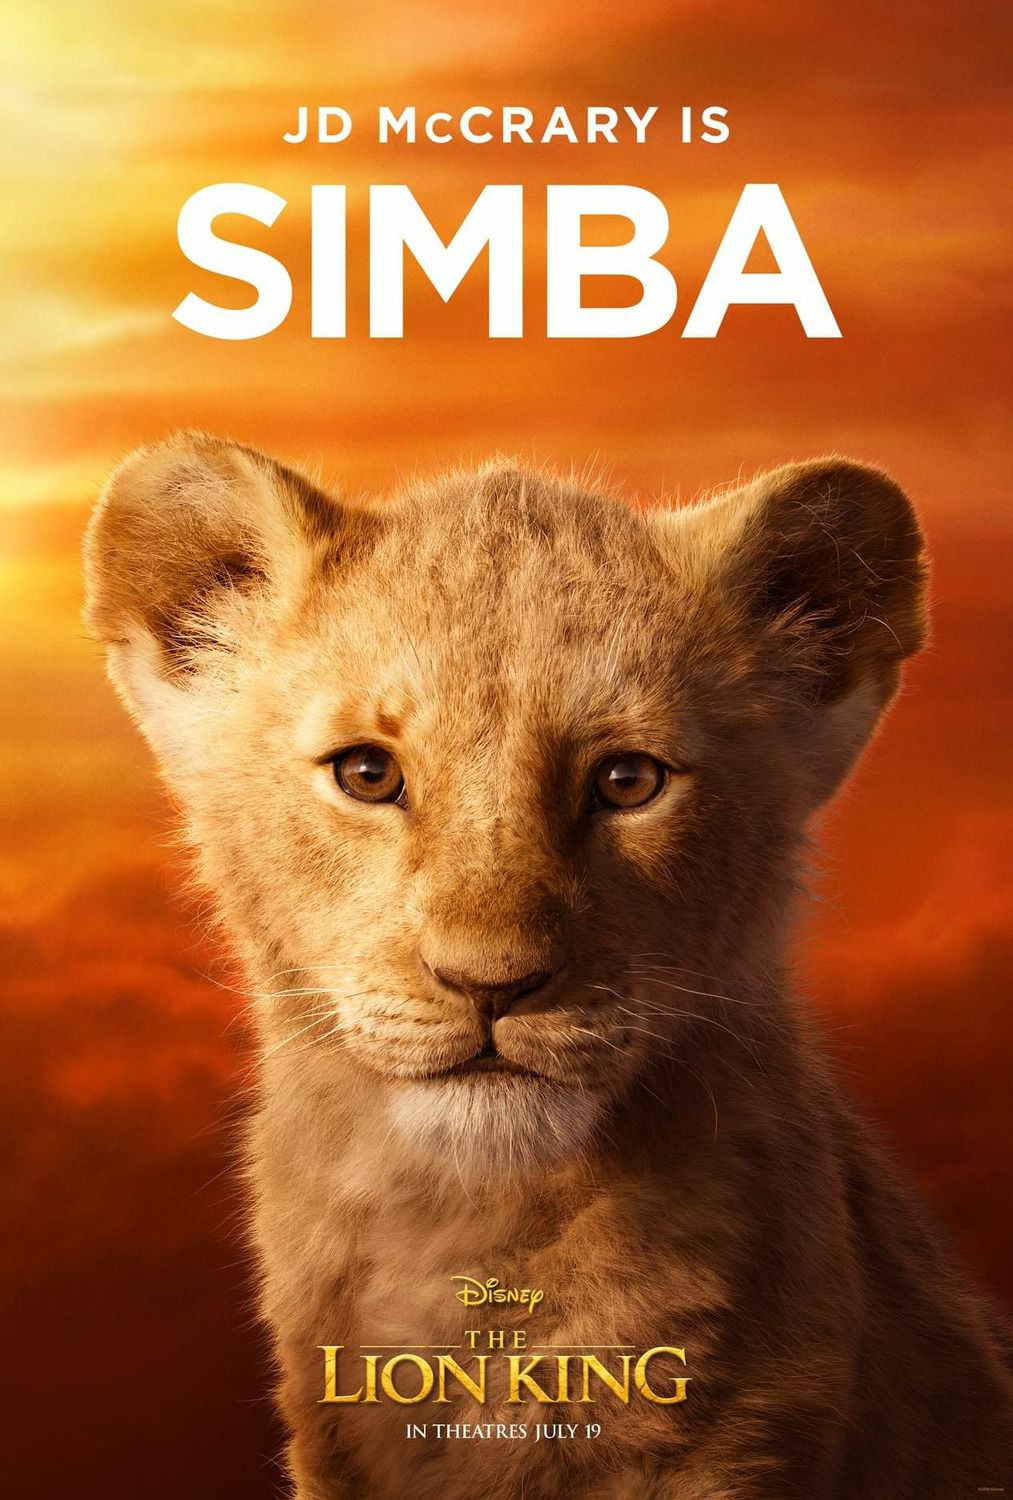 JD McCrary is young Simba